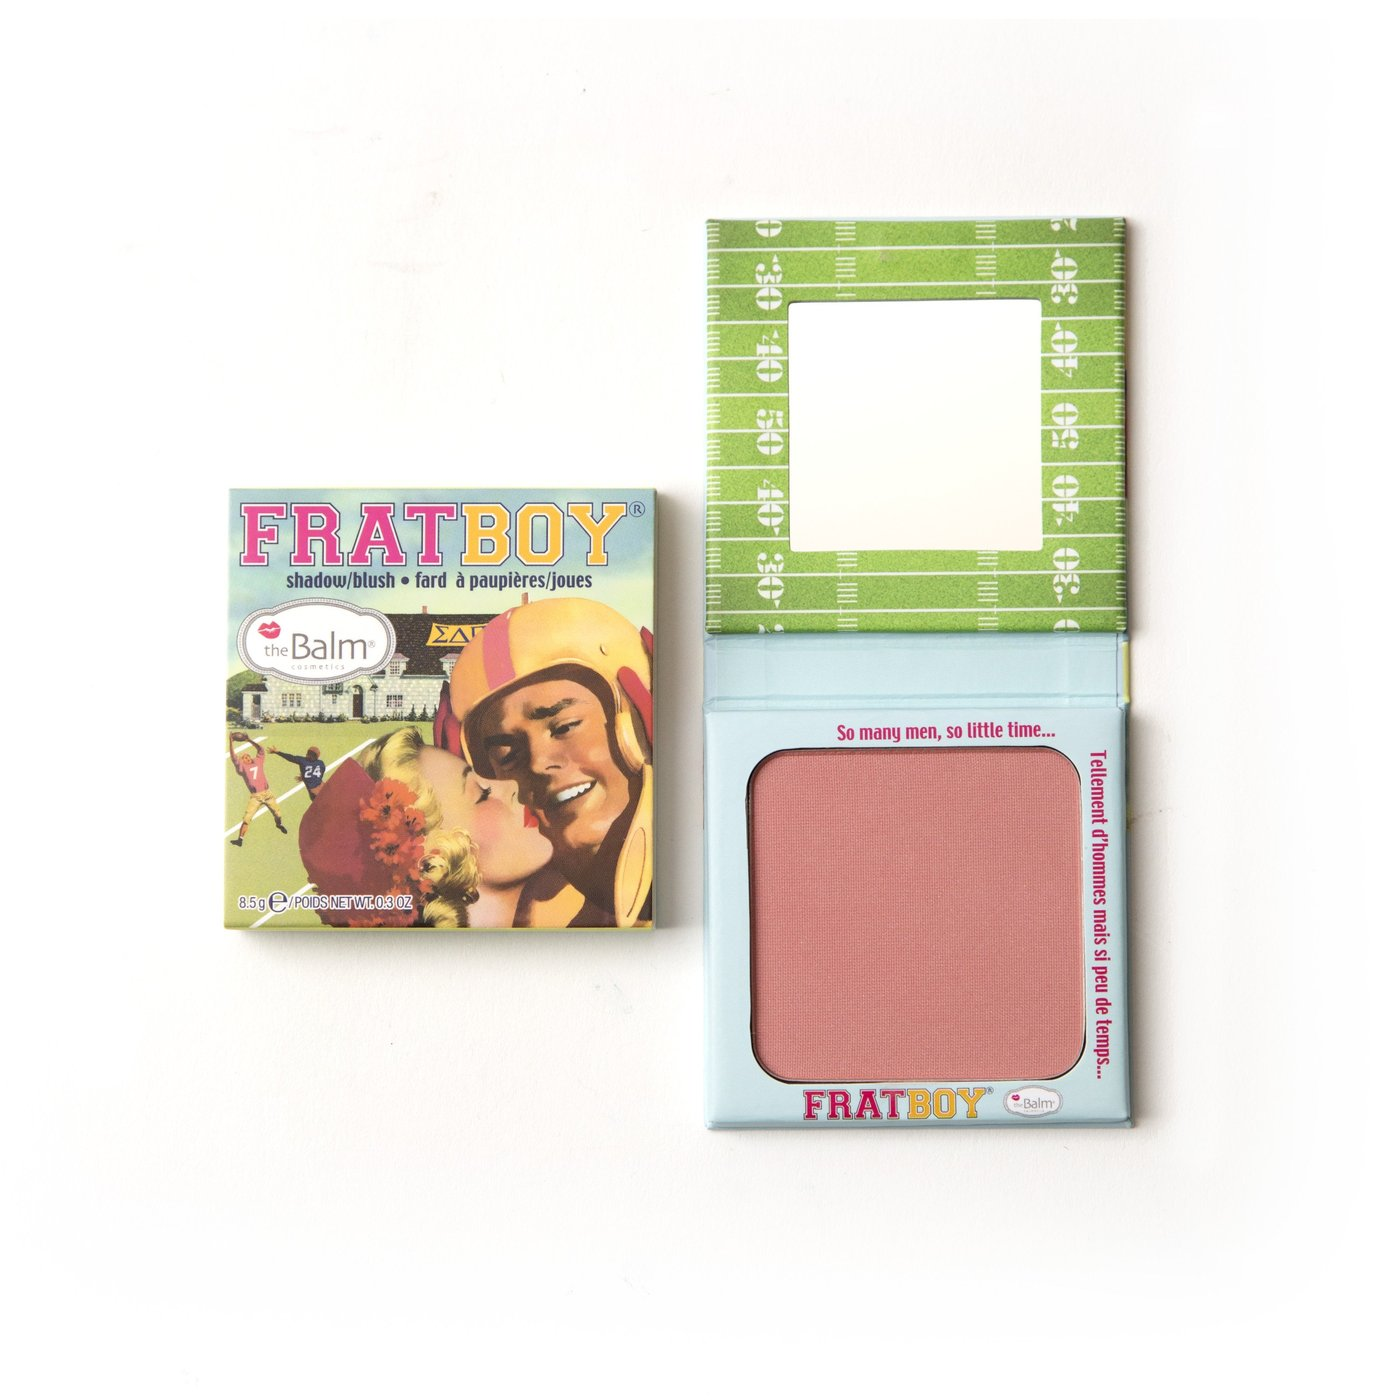 Blush Fratboy - the Balm